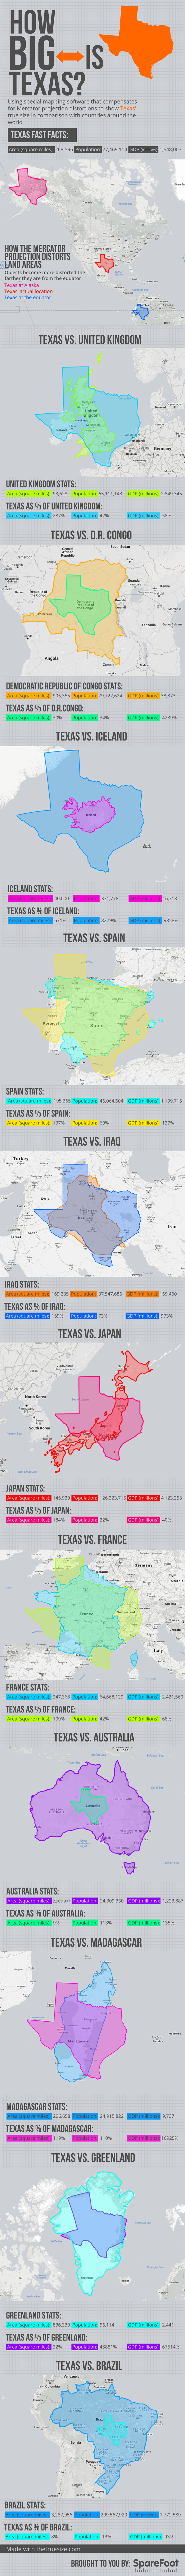 How Big Is Texas? - Infographic